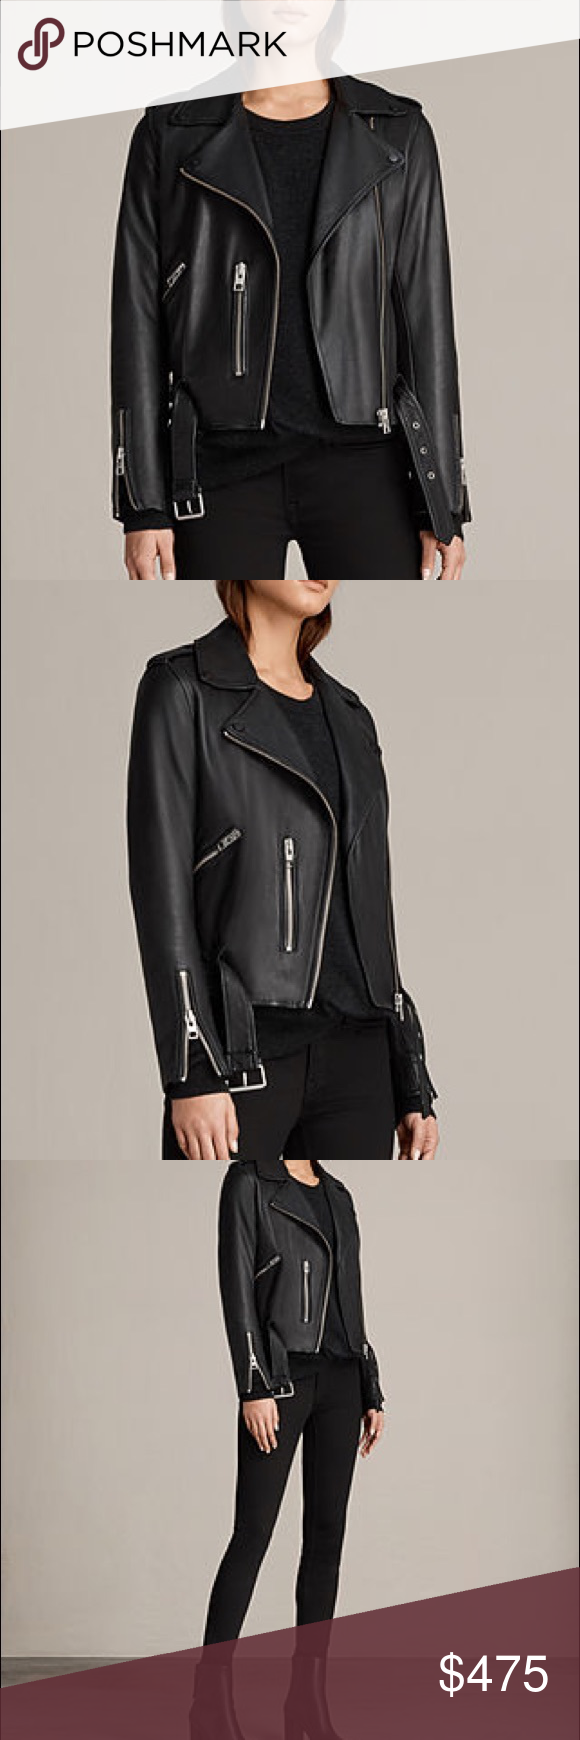 0058057d8 BNWT All Saints Baldwin Leather Biker Jacket Brand new with tags All ...